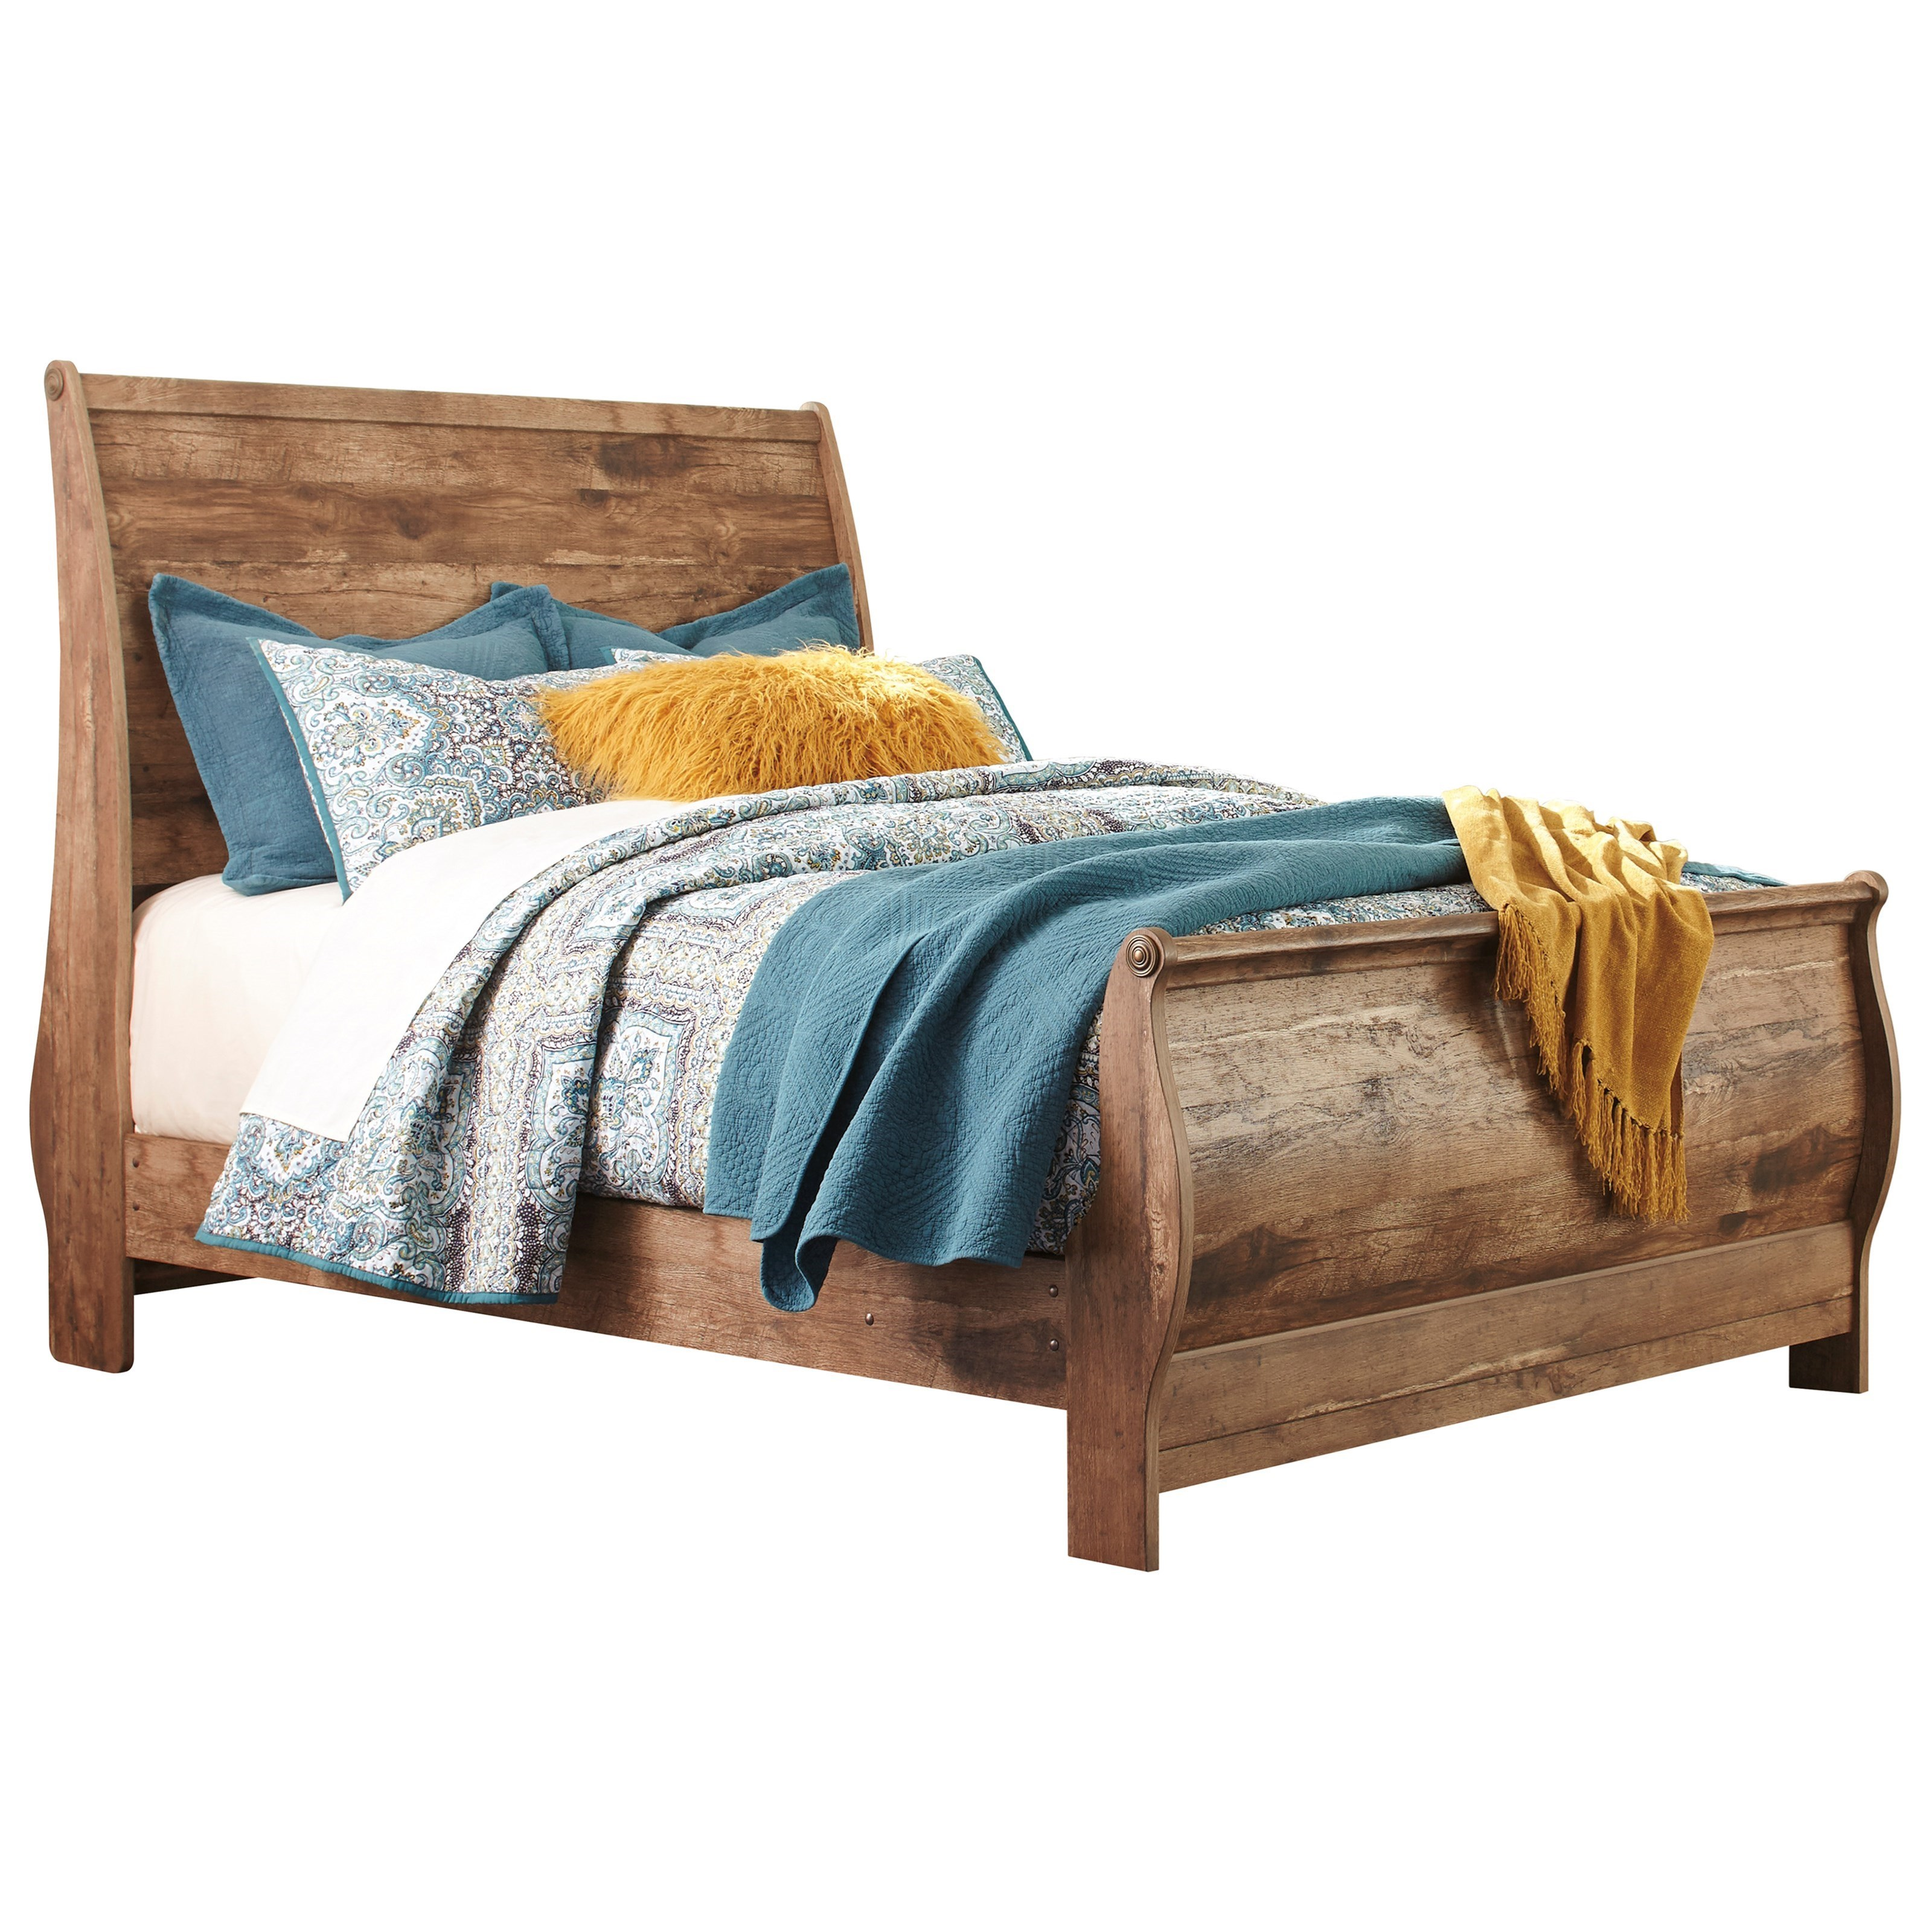 Signature Design By Ashley Blaneville Rustic Style Queen Sleigh Bed John V Schultz Furniture